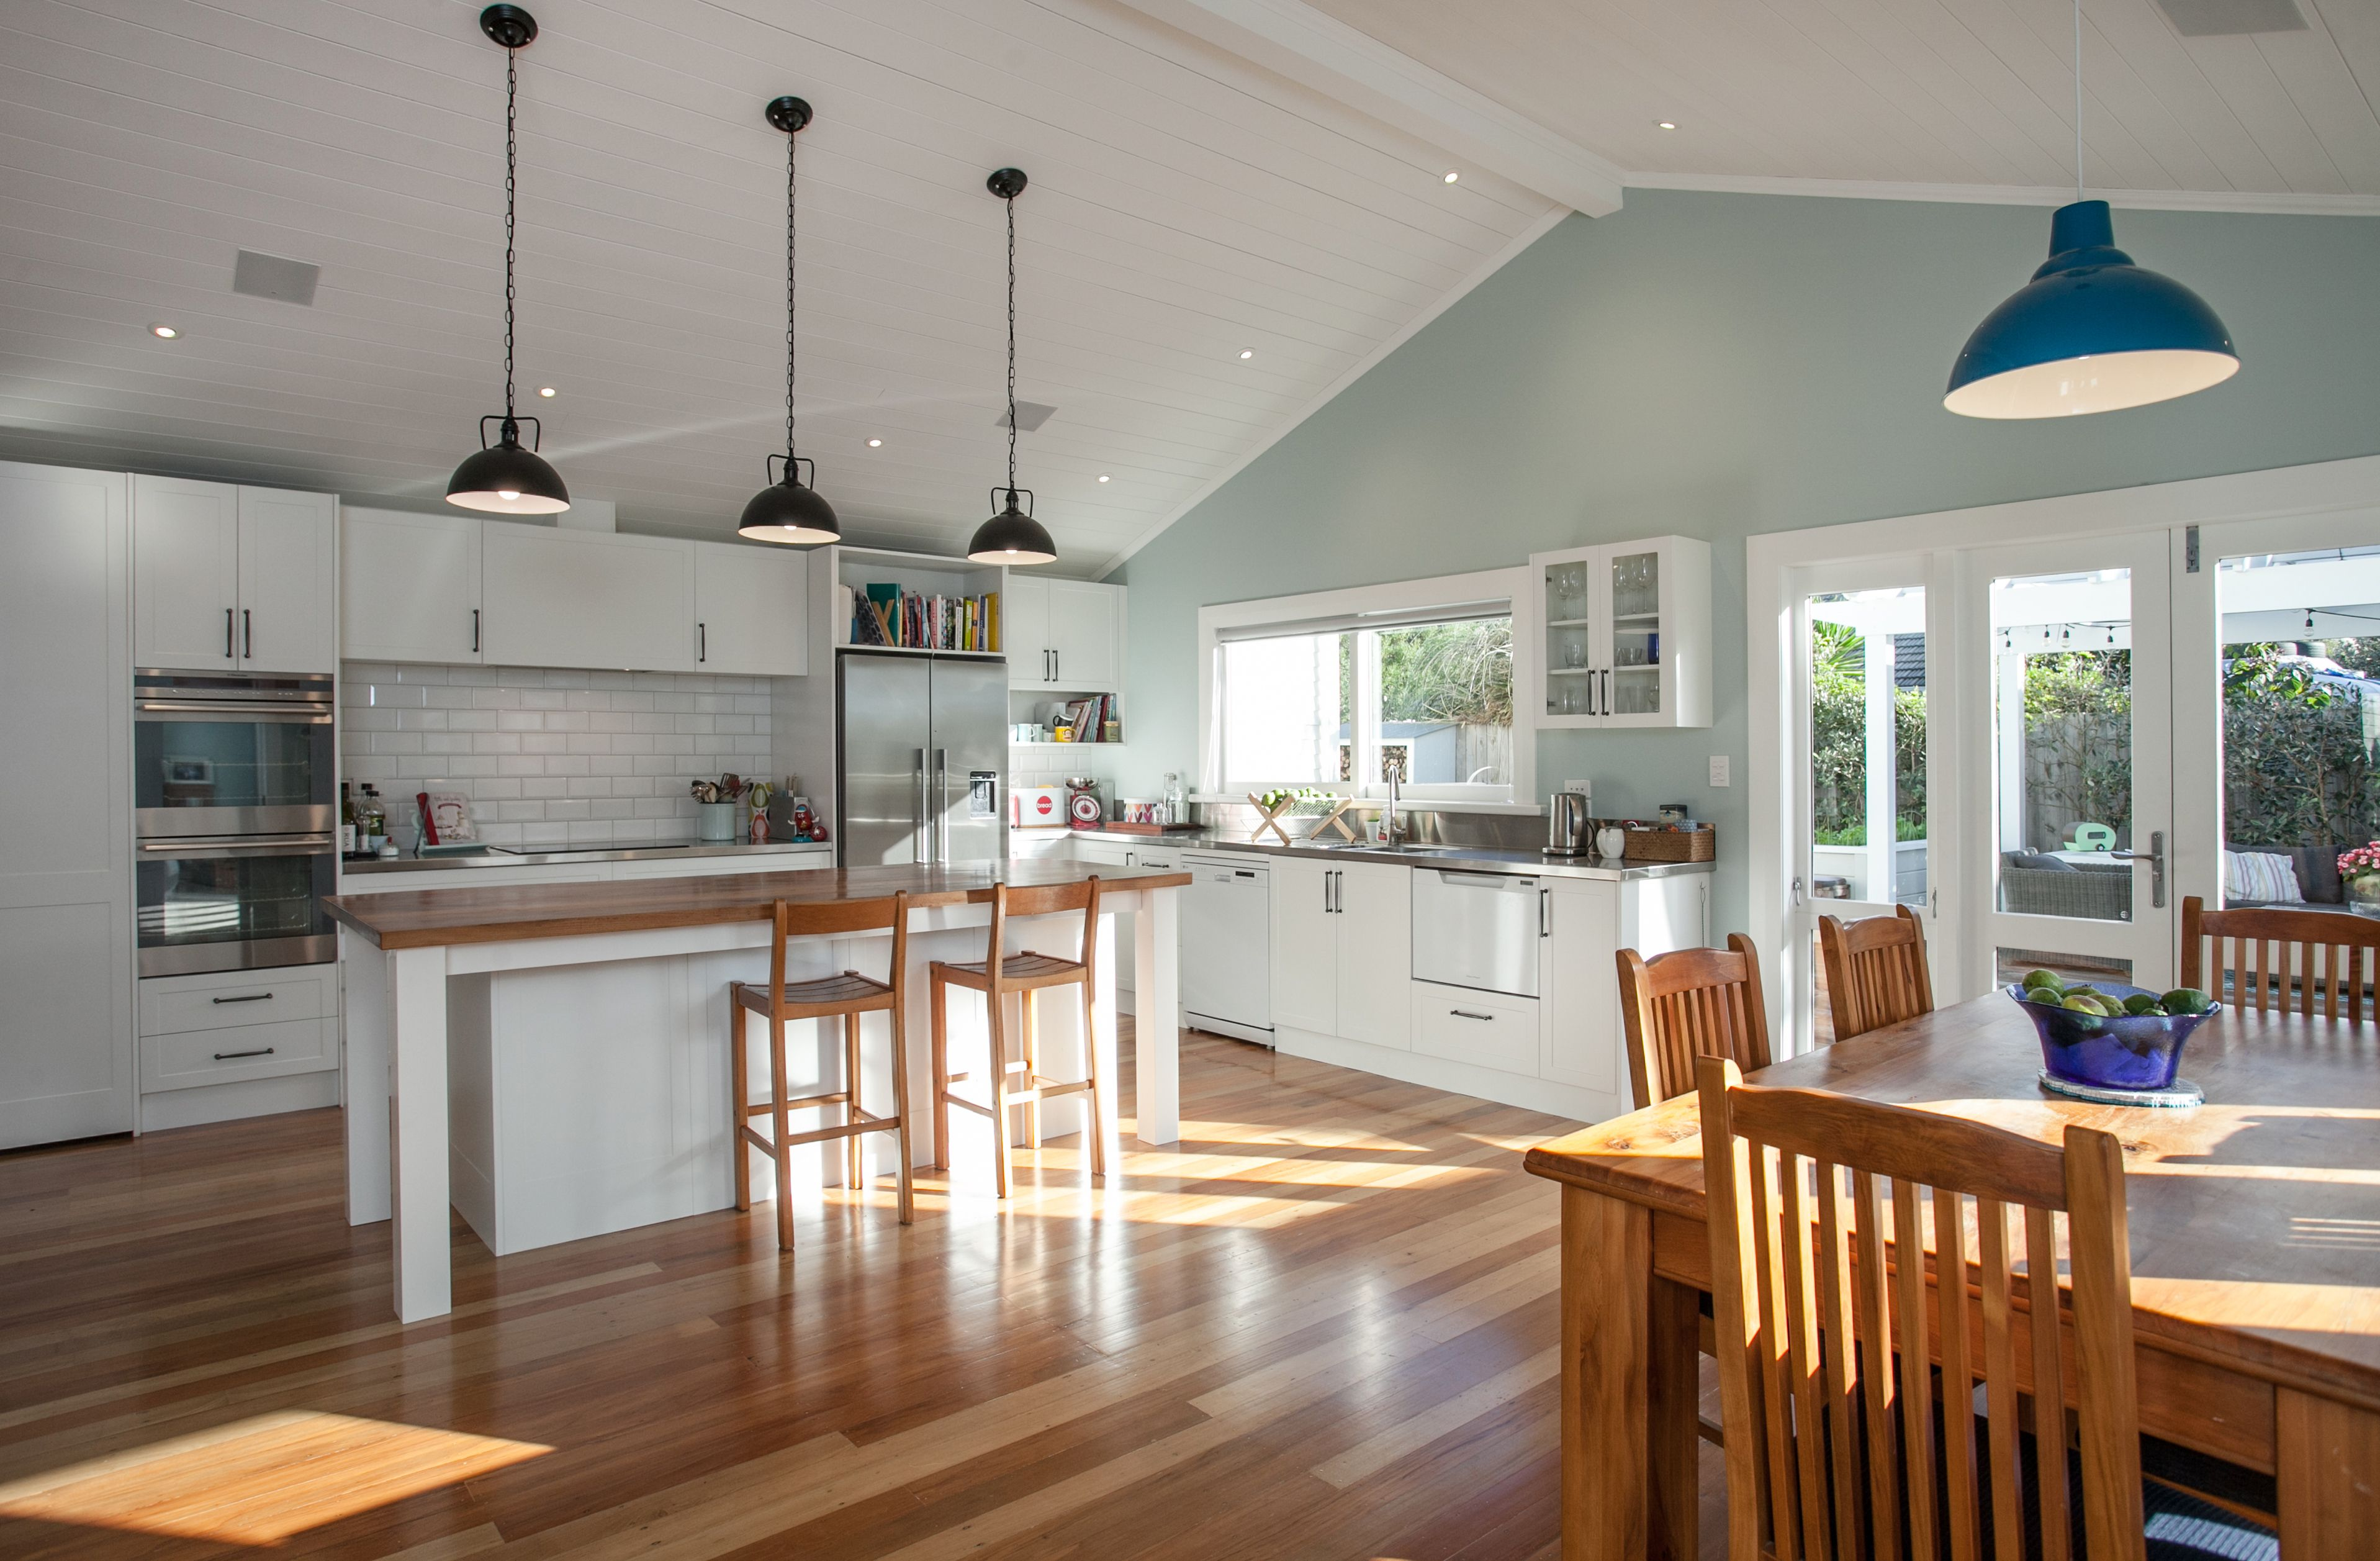 1900 39 s villa renovation cambridge new zealand classy for House interior design new zealand